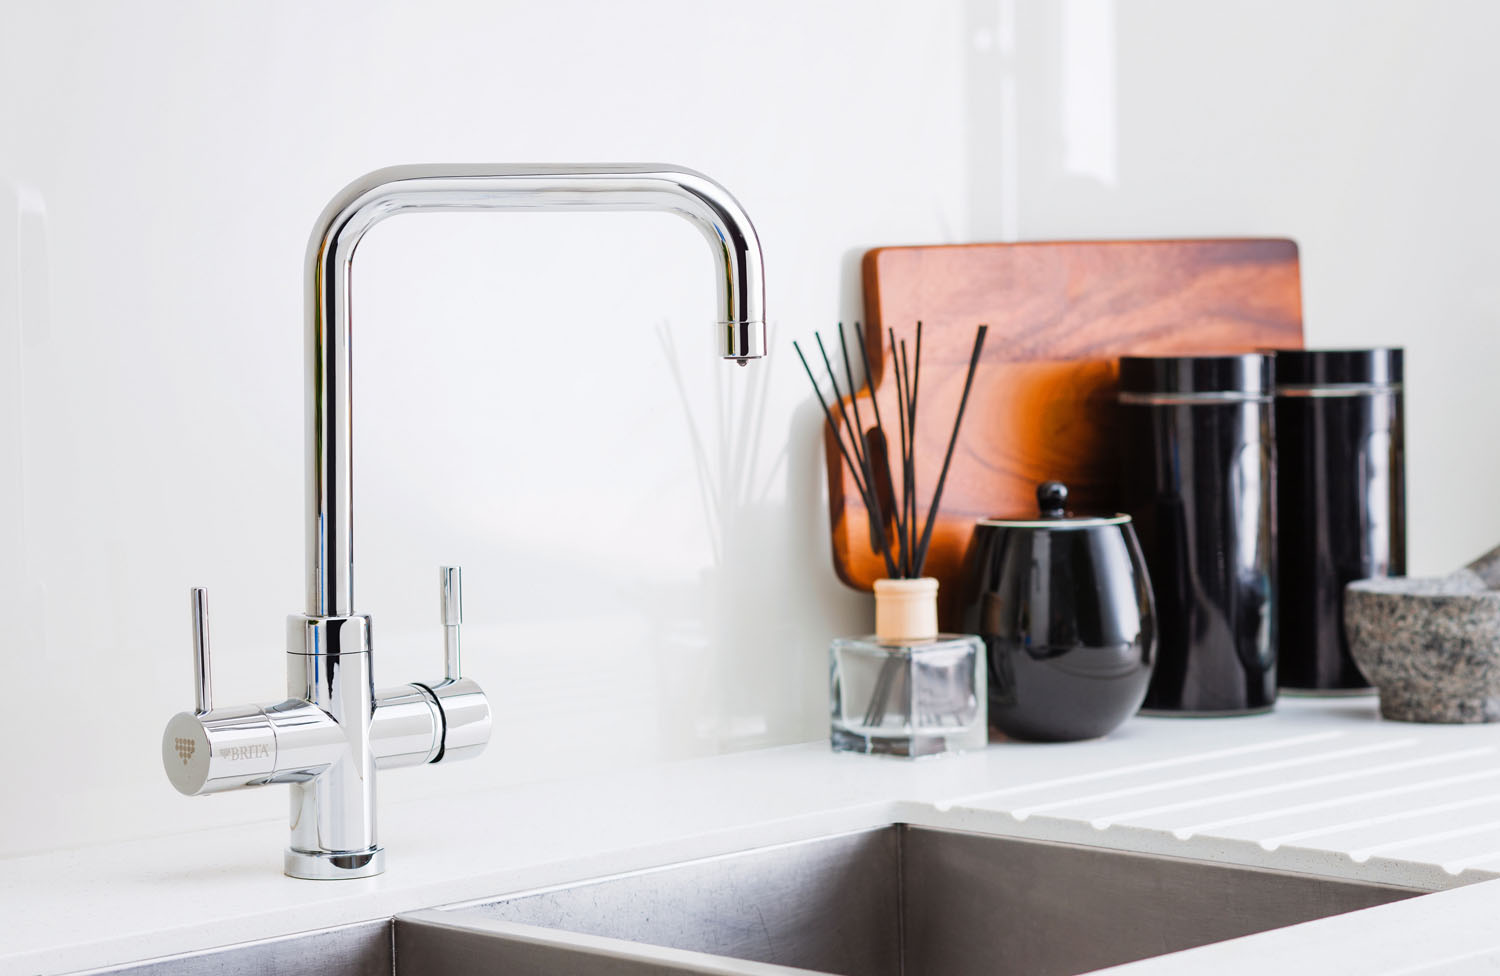 Tapware: Not your traditional kitchen sink